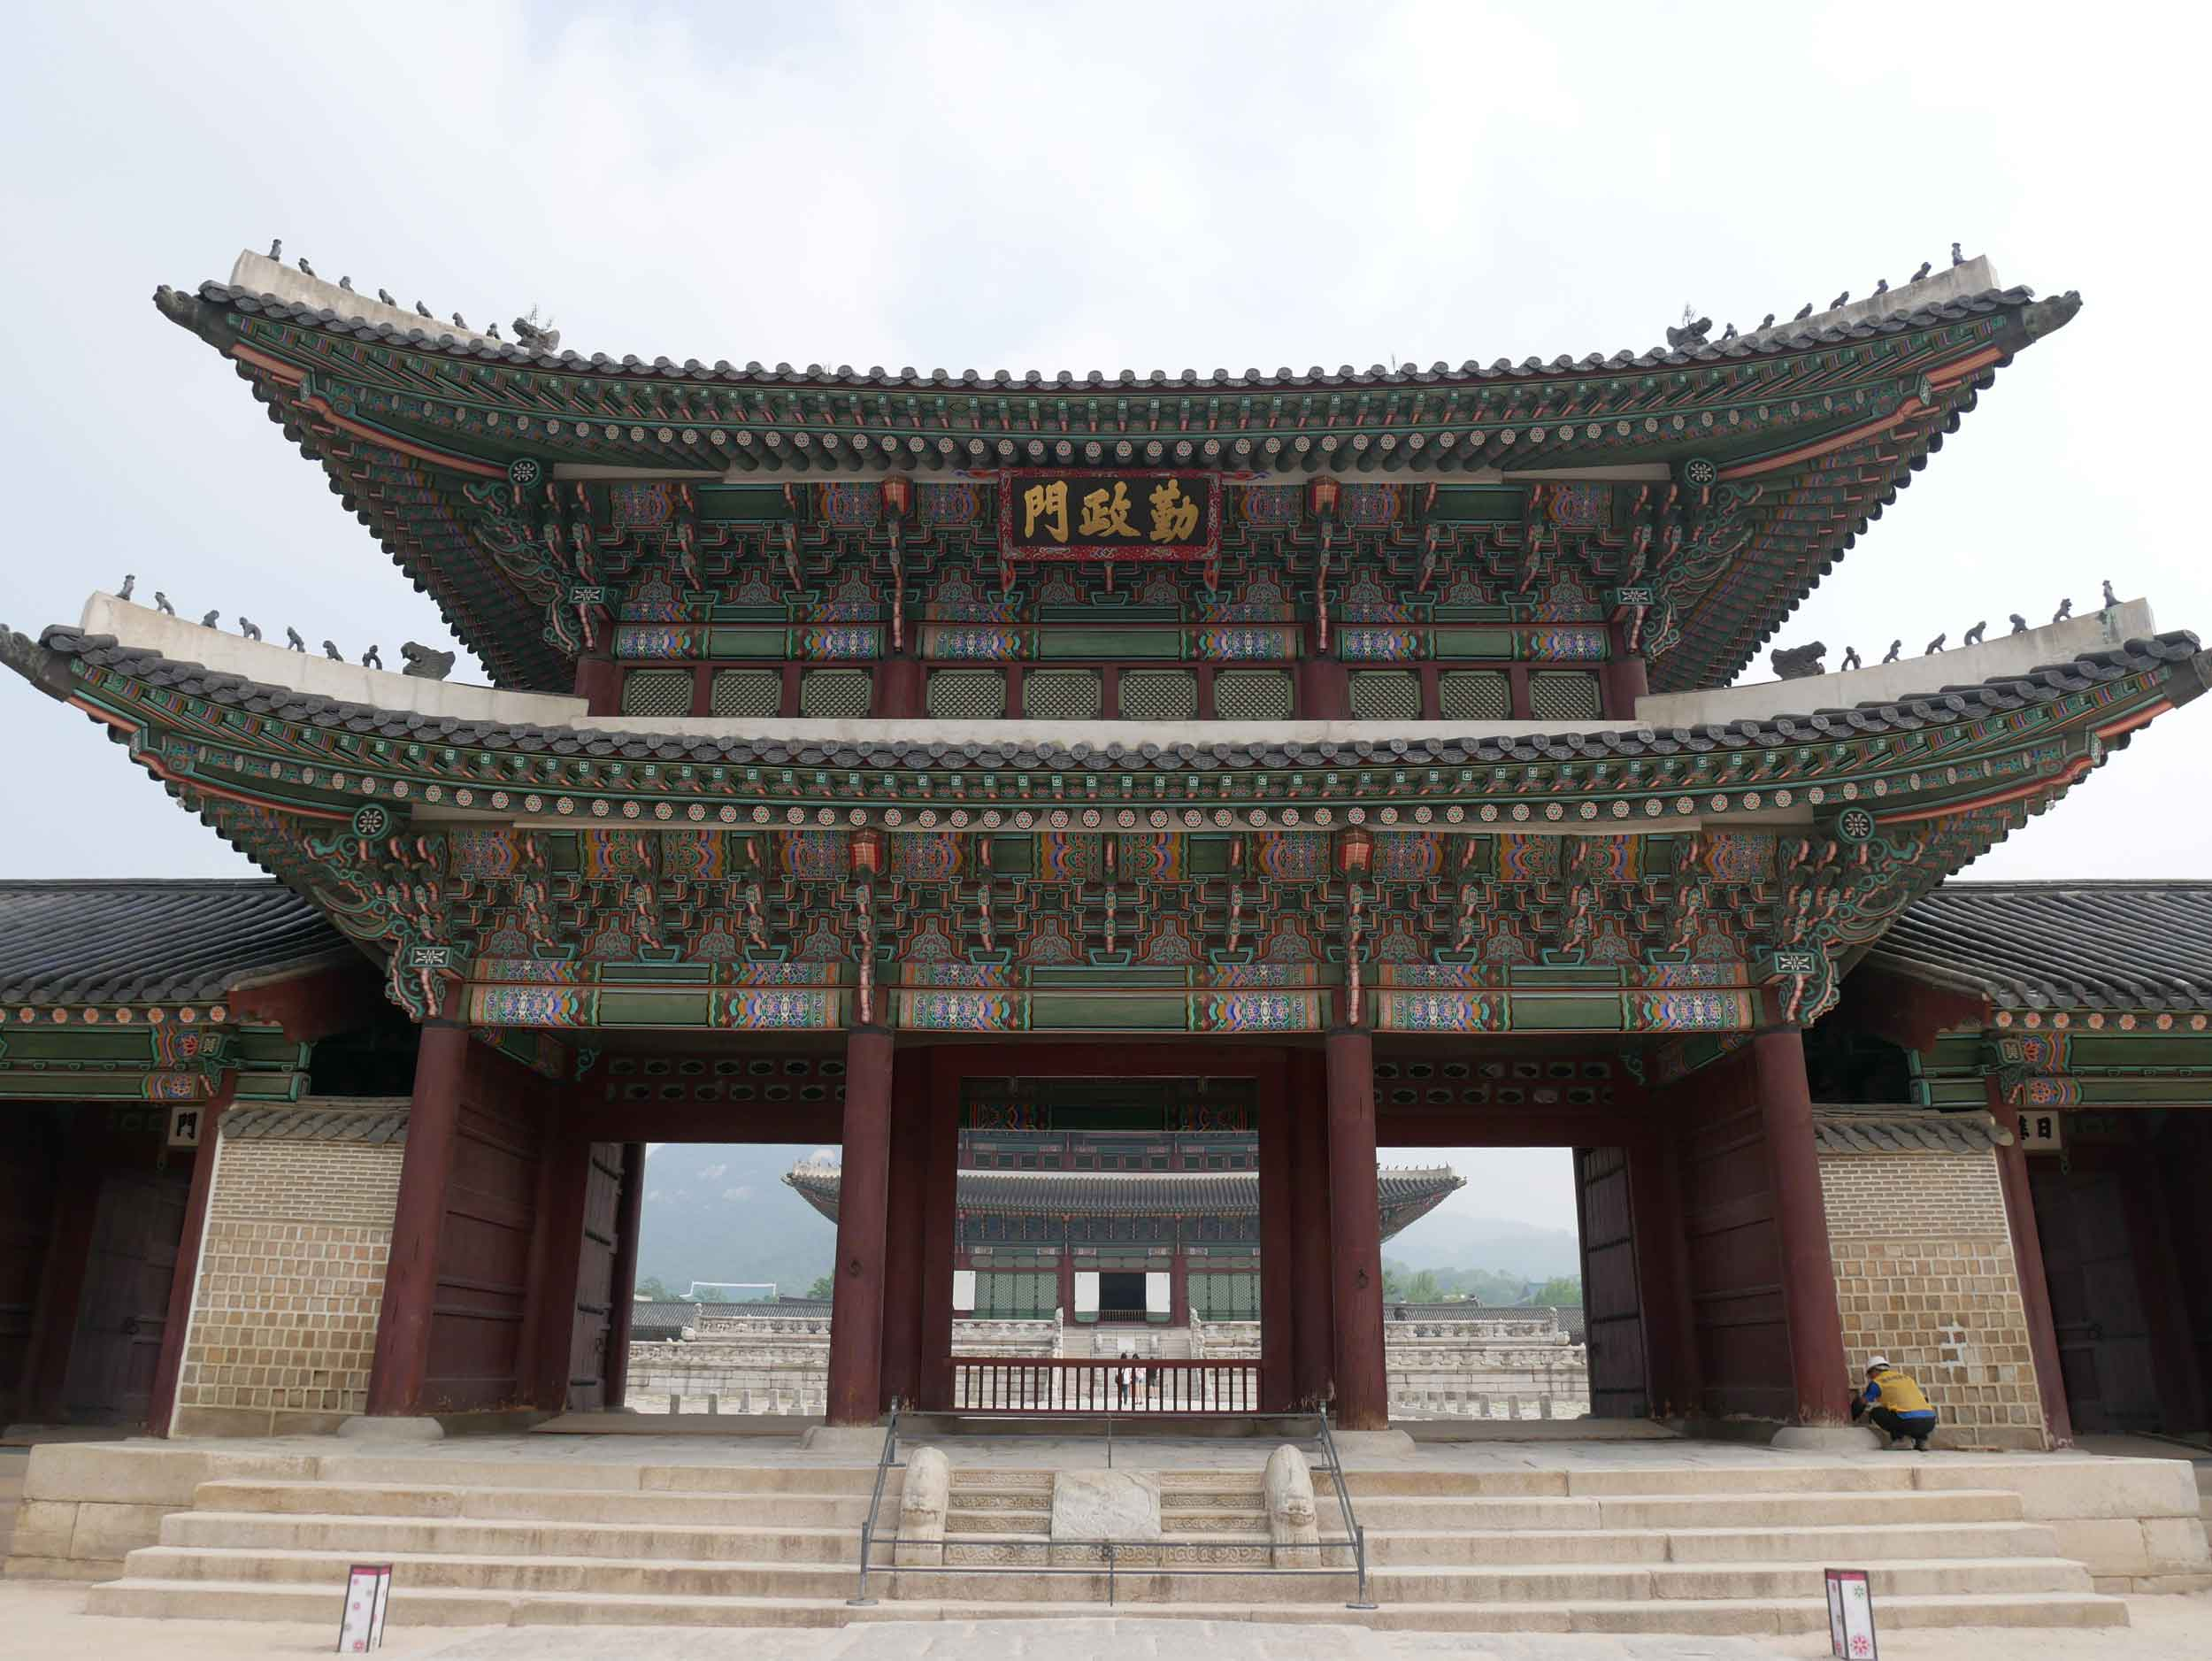 The next morning, we started at the Gyeongbokgung Palace, built in the late 1300s when the Joseon Dynasty capital was moved to Seoul (June 30).